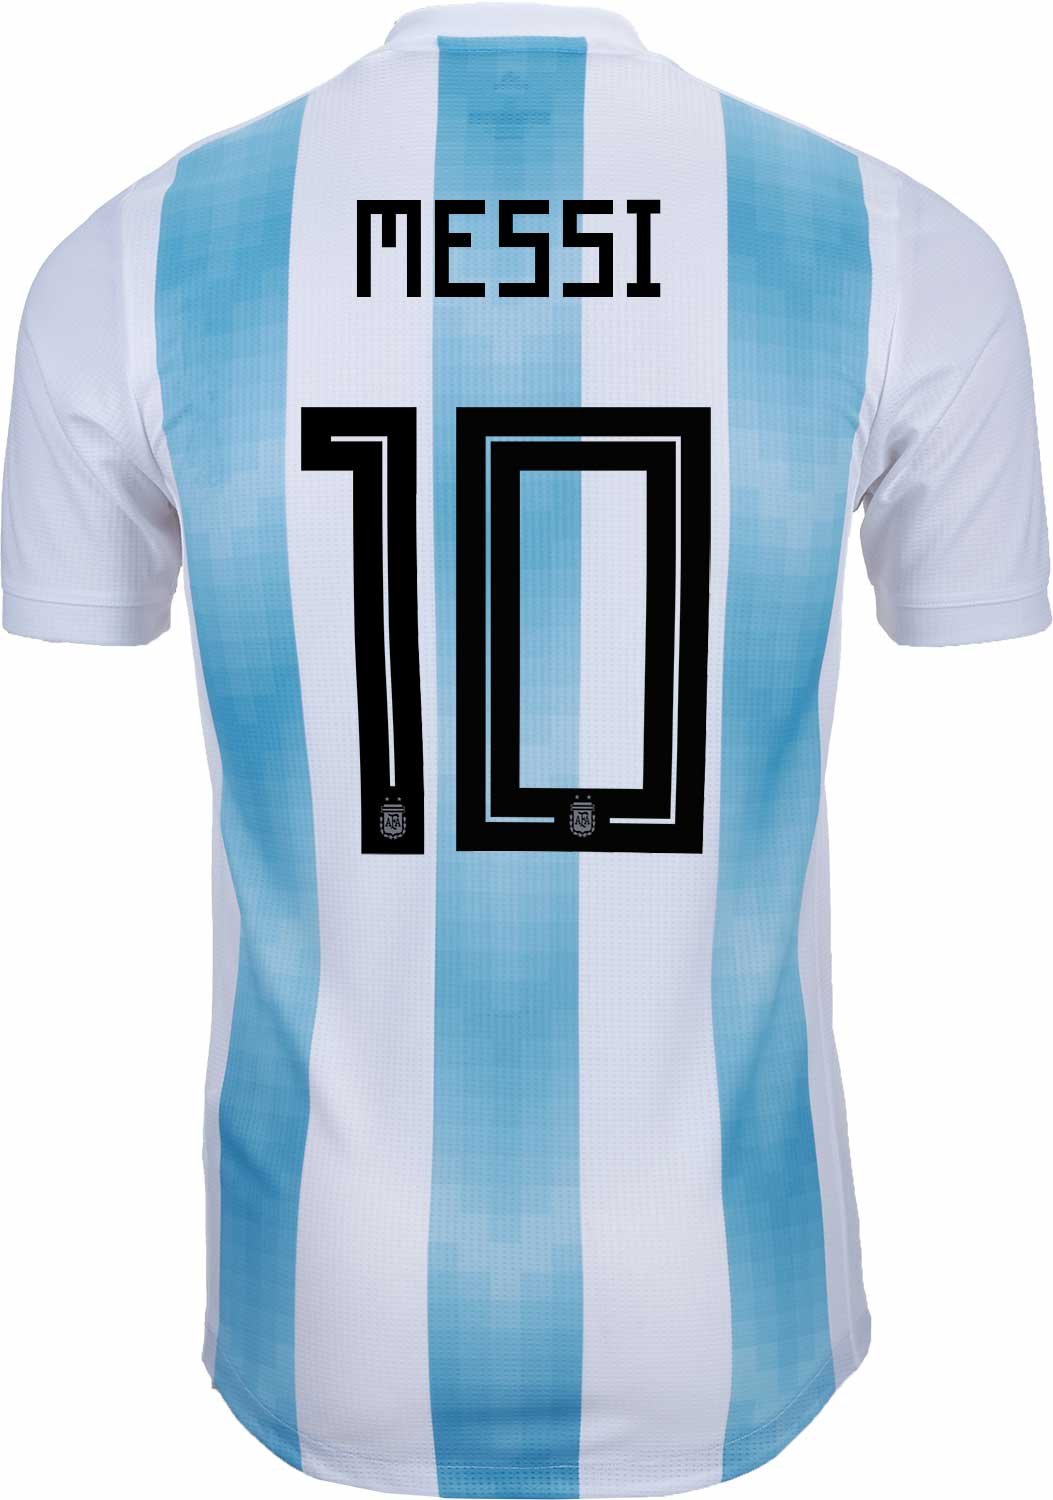 9c6c87fb7 adidas Lionel Messi Argentina Authentic Home Jersey 2018-19 - SoccerPro